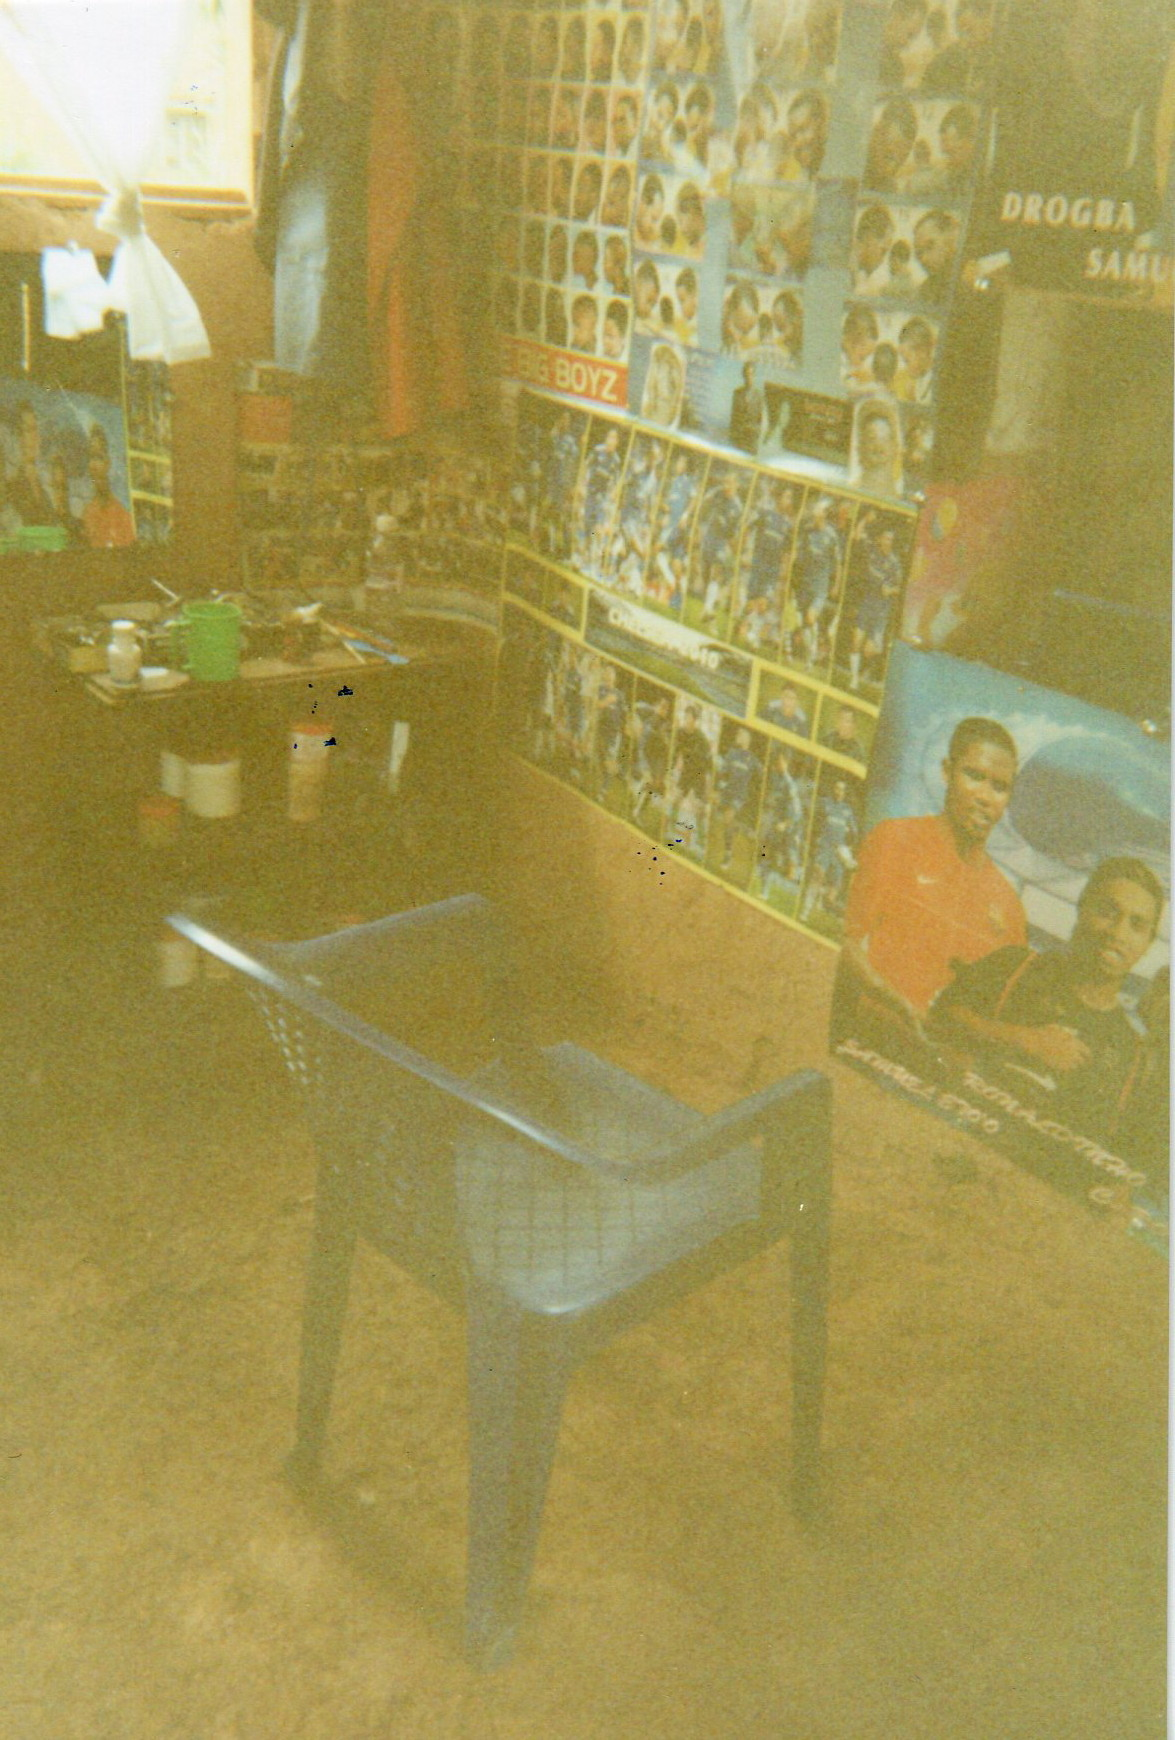 Barbershop for income generation of the EAFGA.